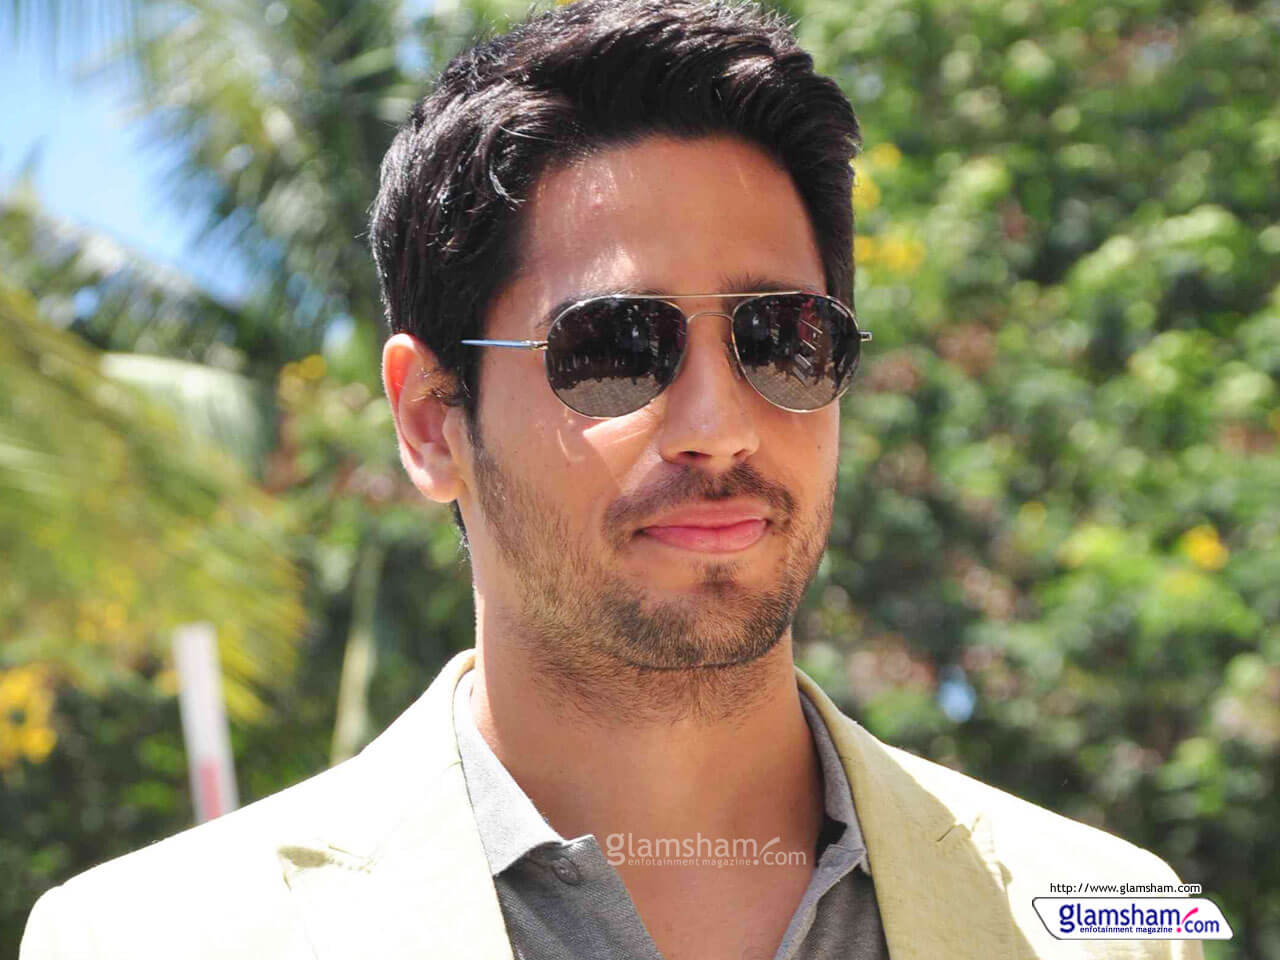 Sidharth Malhotra Movies, Height, Age, Photos, Birth Date, Biography, Girlfriend, Family, Hairstyle, Education, Details, Net Worth, Awards, Wiki, Instagram, Facebook, Imdb, Twitter (28)